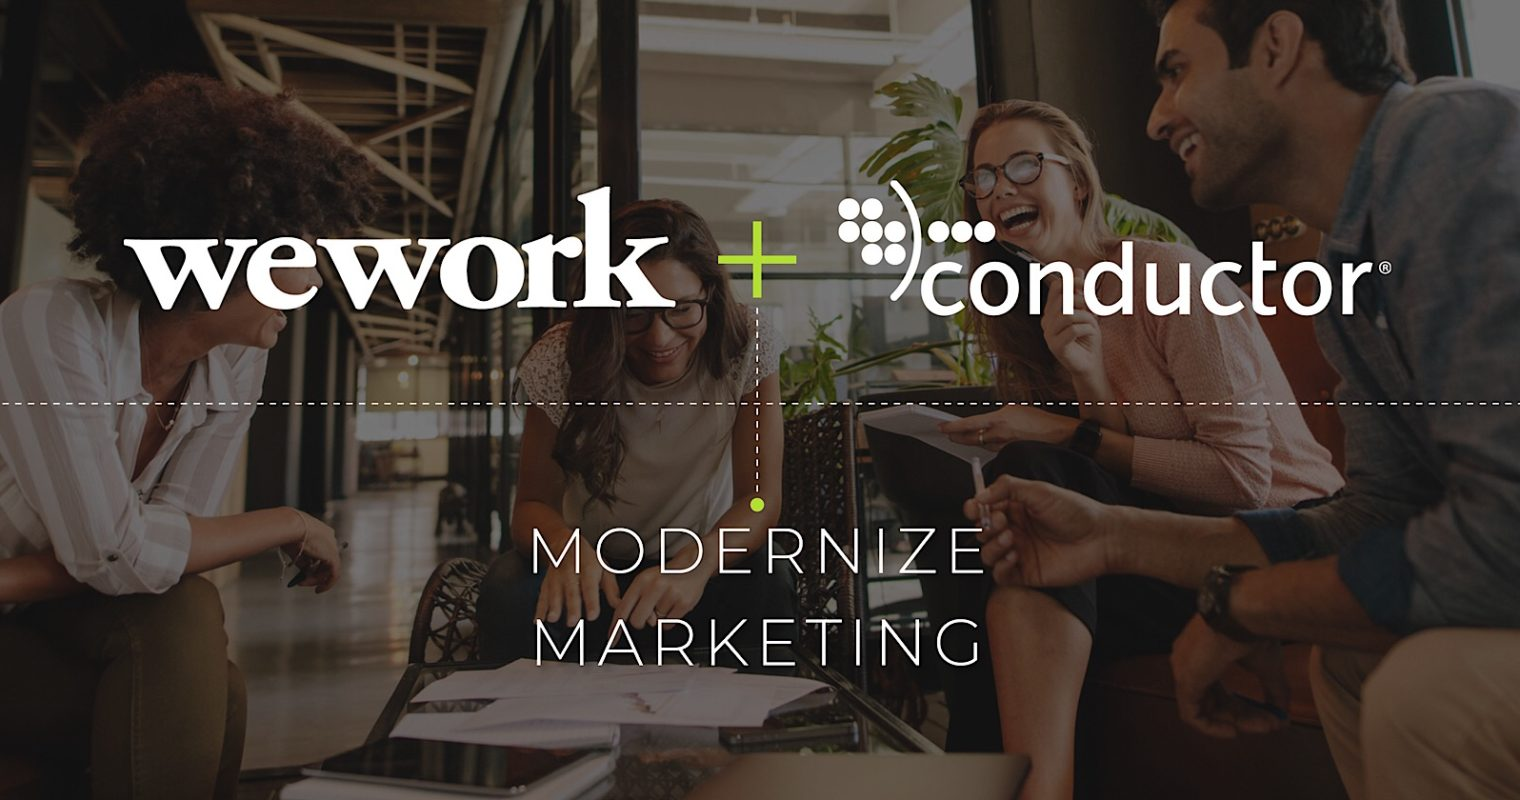 SEO Company Conductor Acquired by WeWork